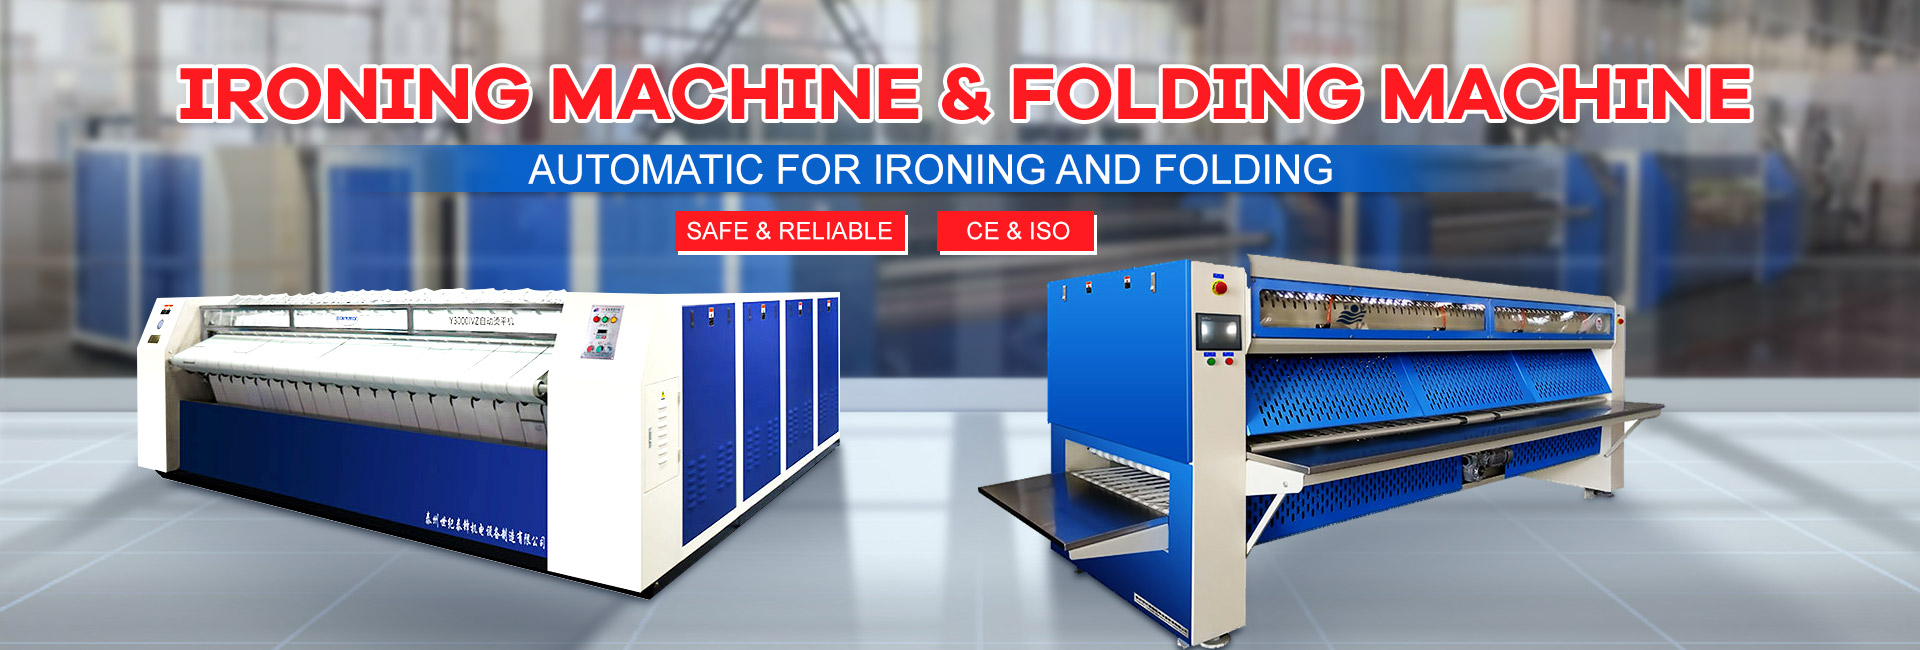 Peglanje Machine & Folding Machine